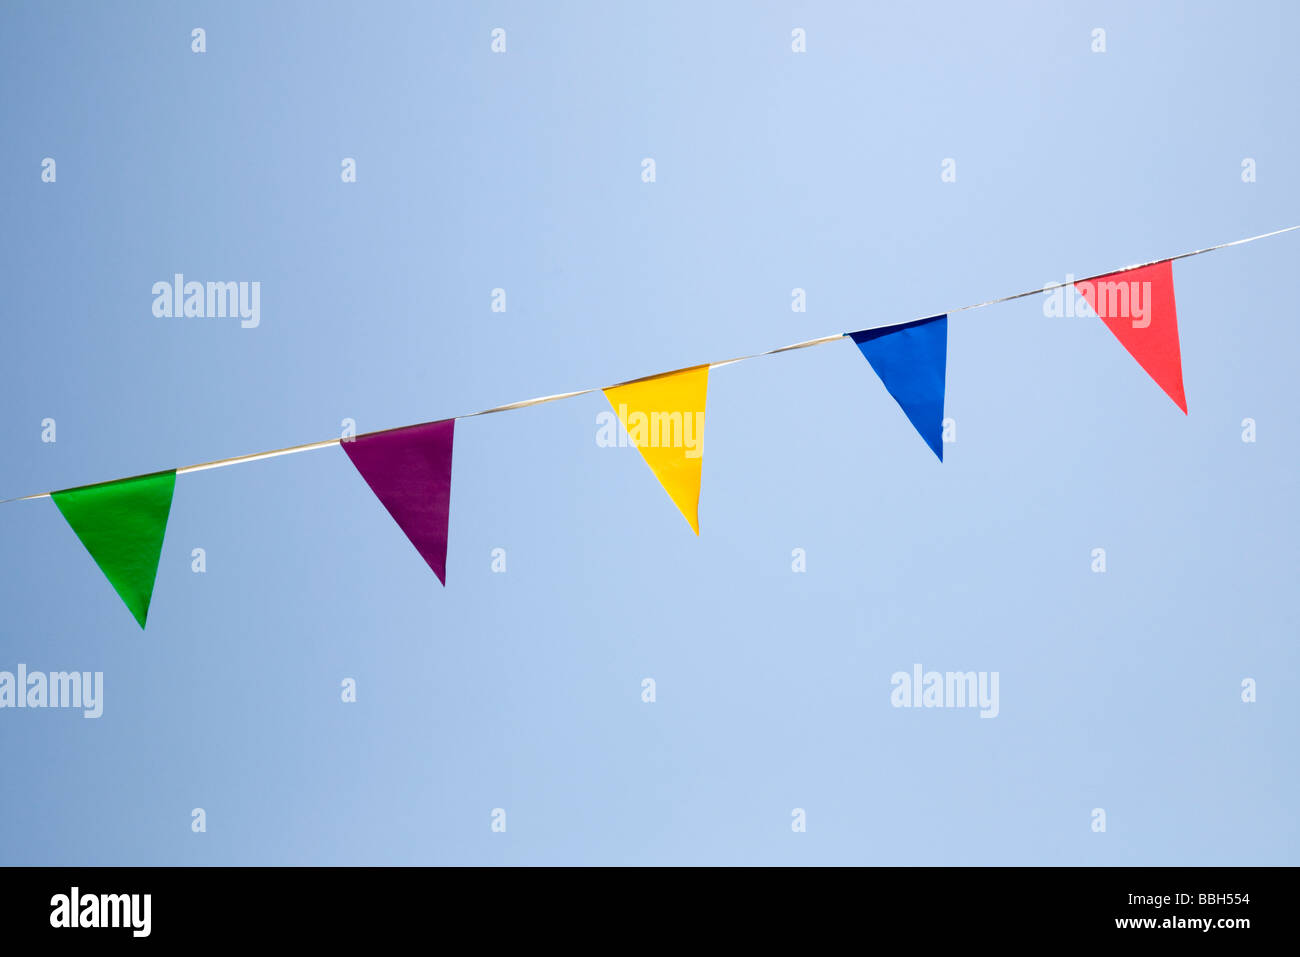 Bunting - triangular flags of different colours against a blue sky - Stock Image